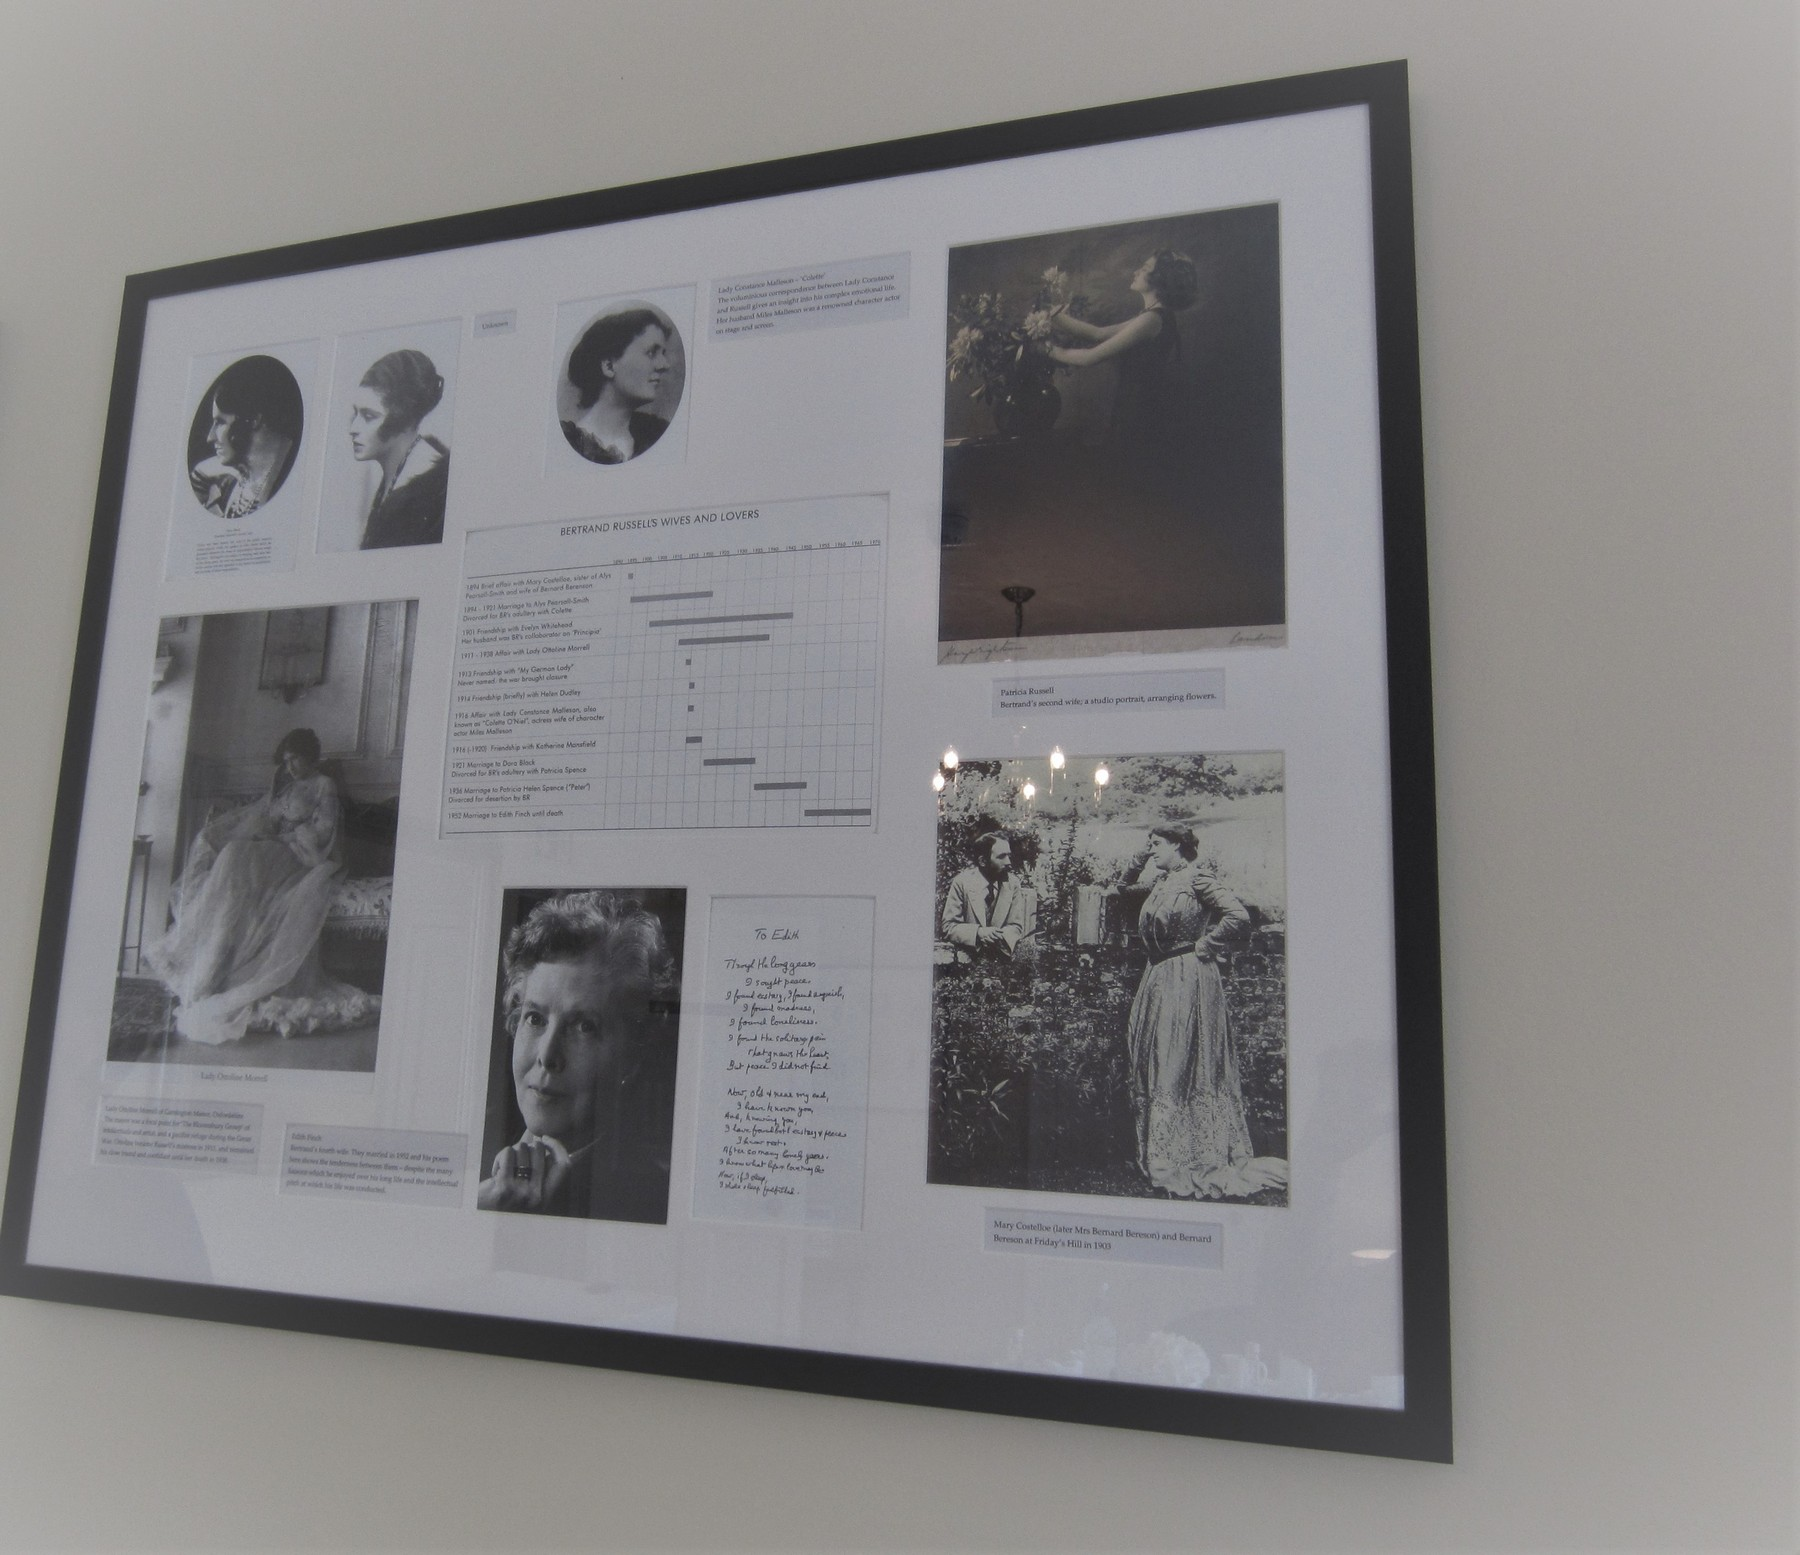 Photo of framed image featuring the wives and lovers of Bertrand Russell